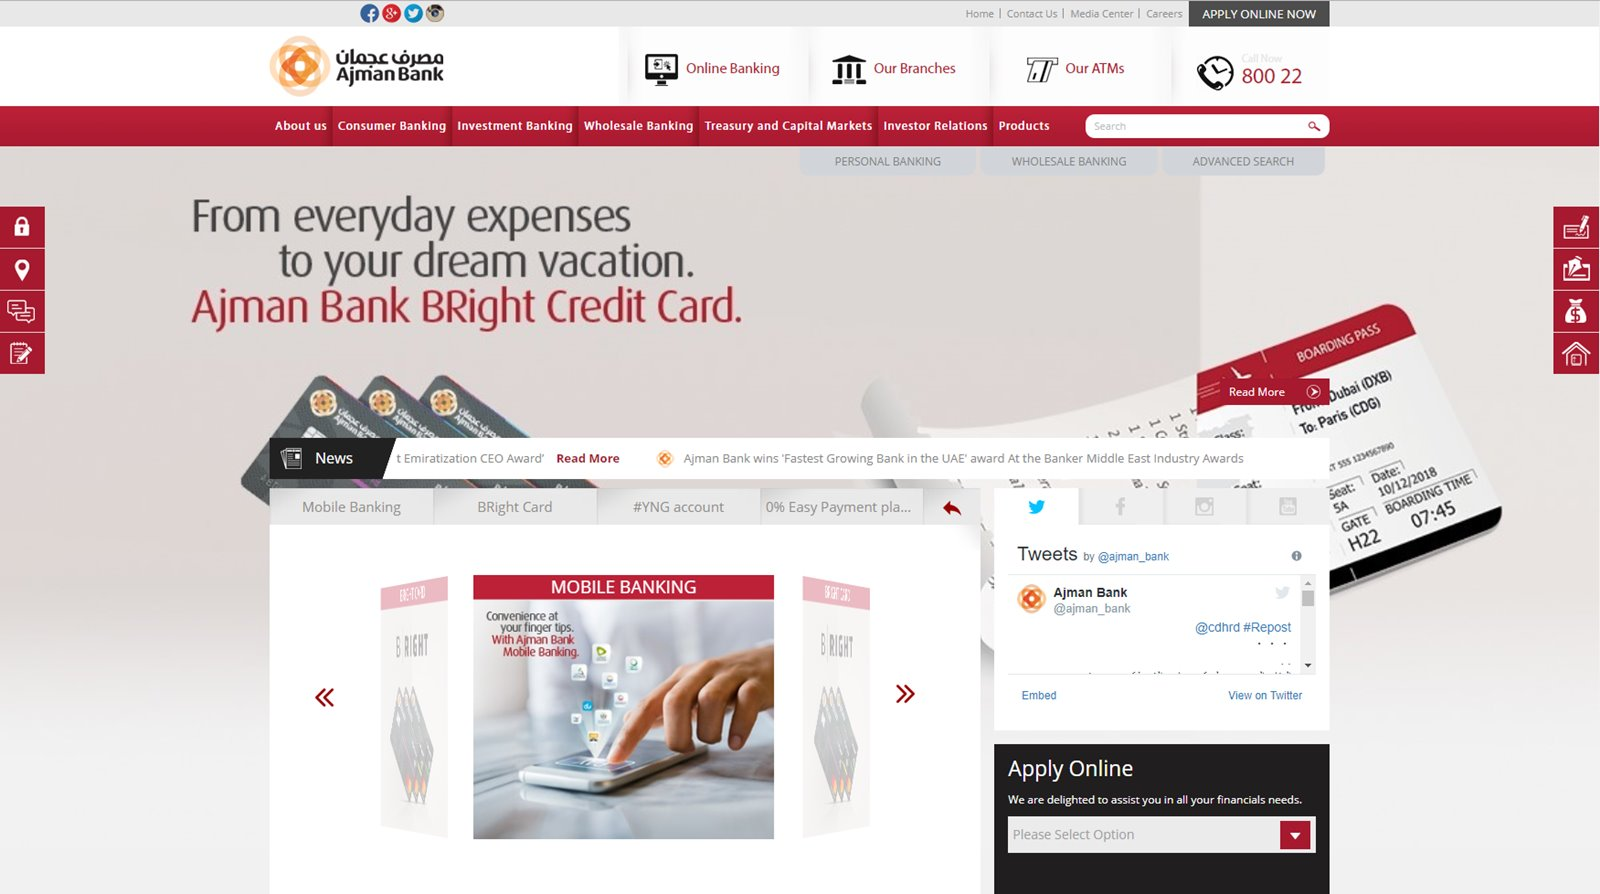 ajman bank website